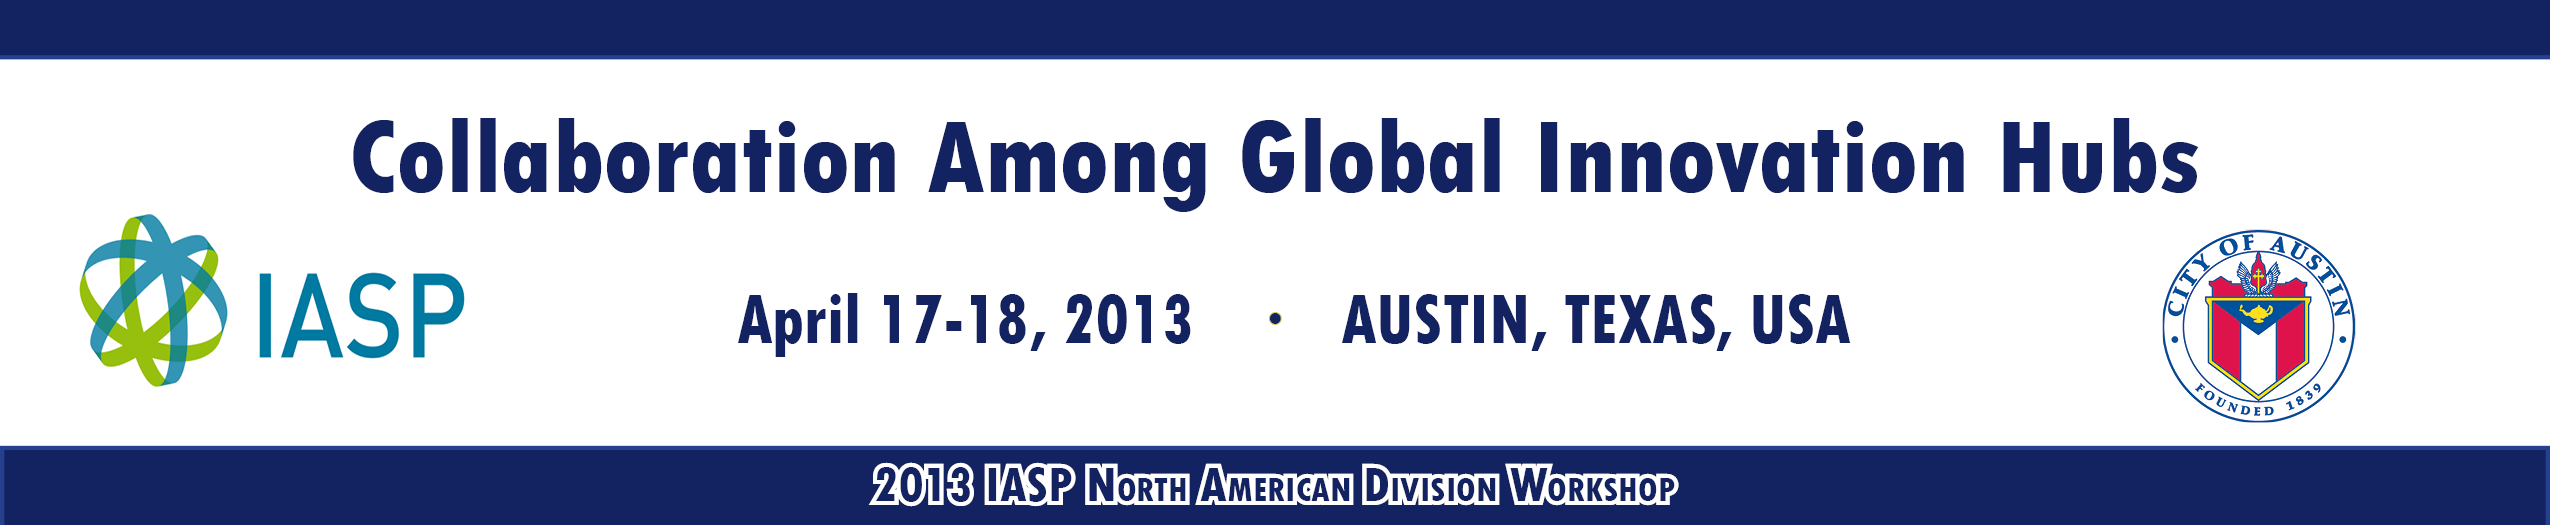 IASP North American Regional Division Workshop